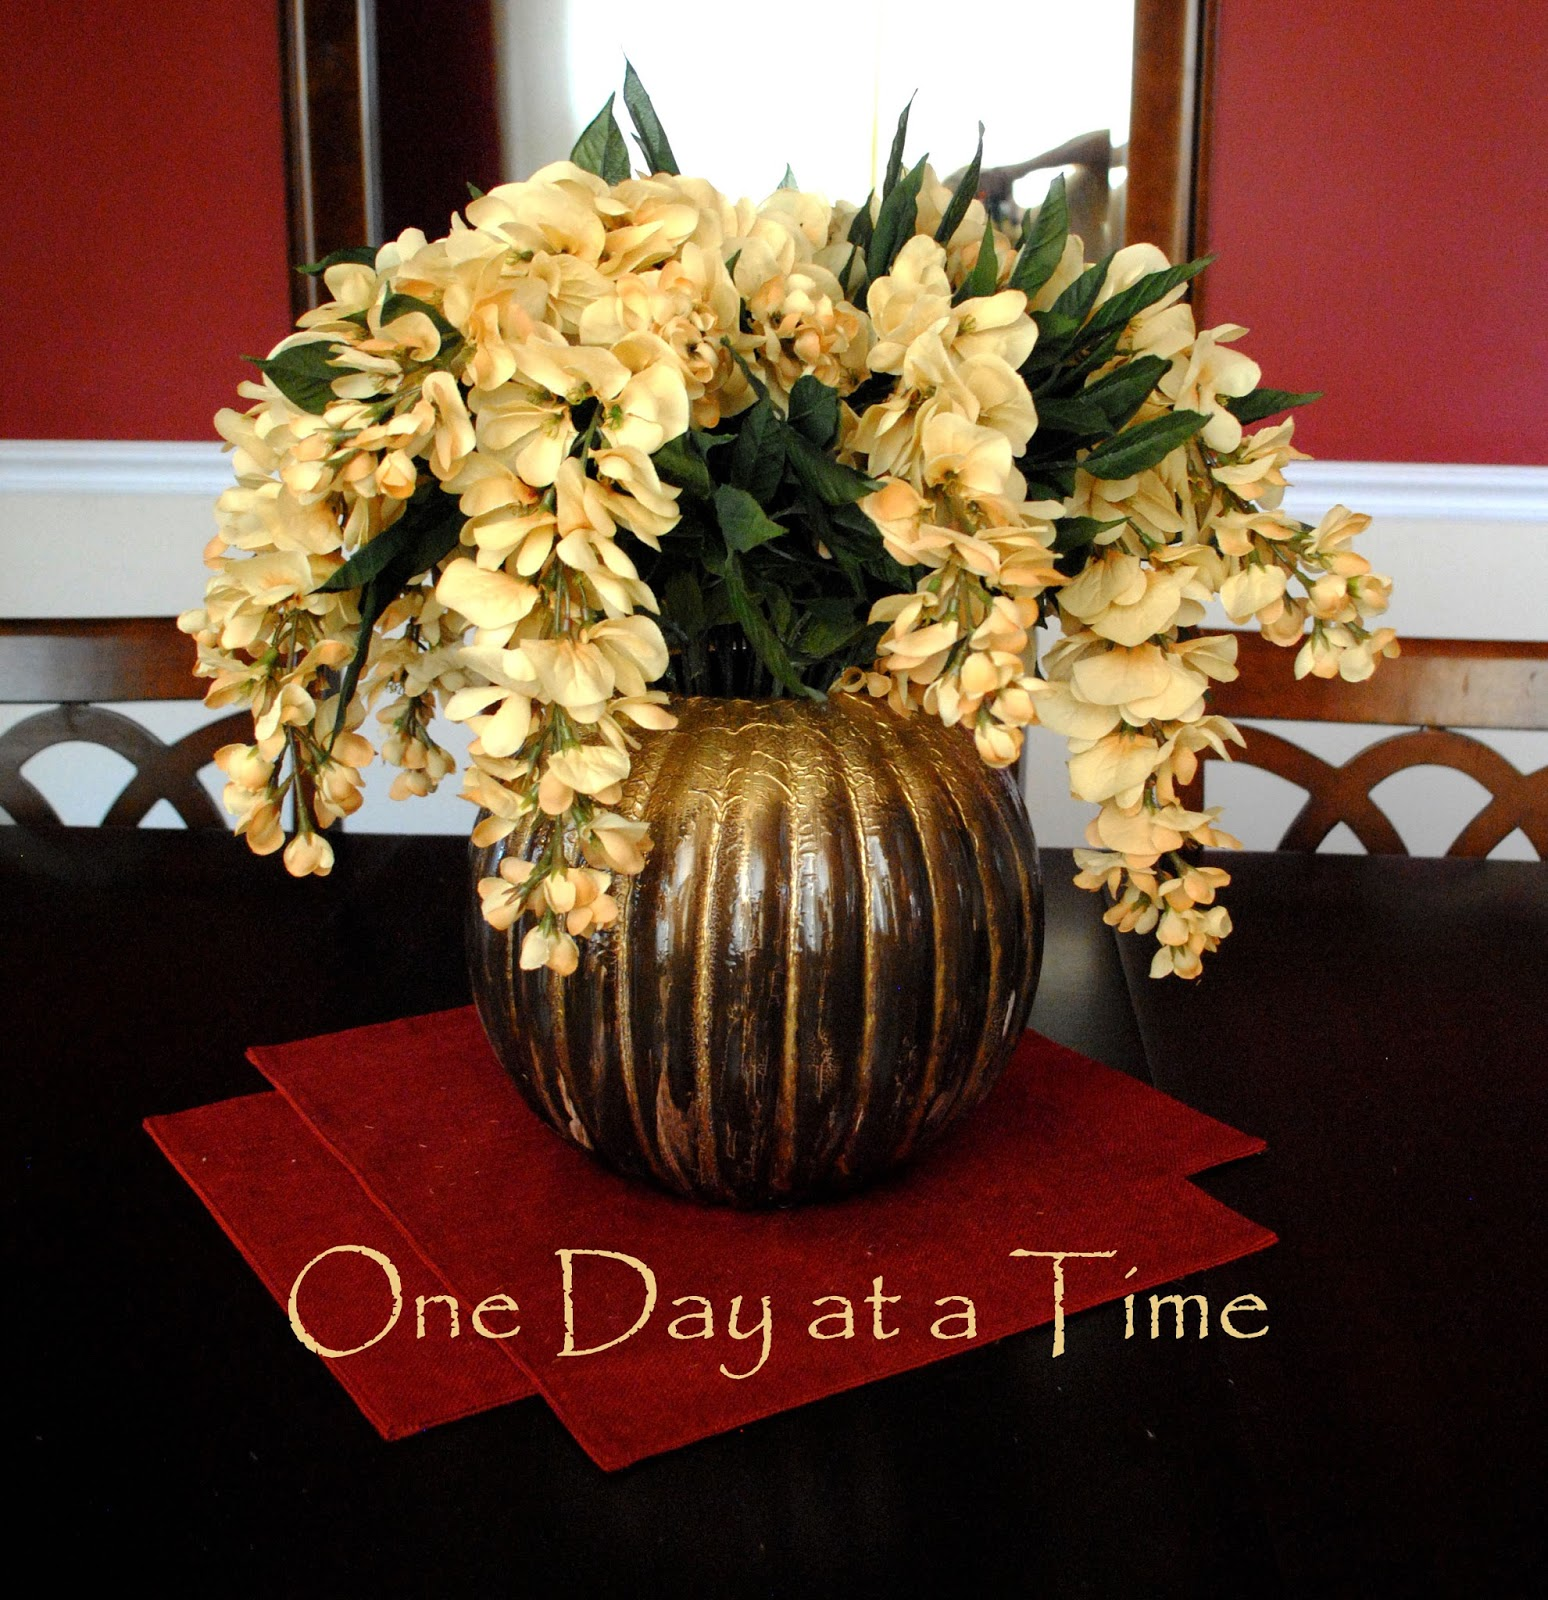 One day at a time peir 1 import knock off vase floridaeventfo Choice Image